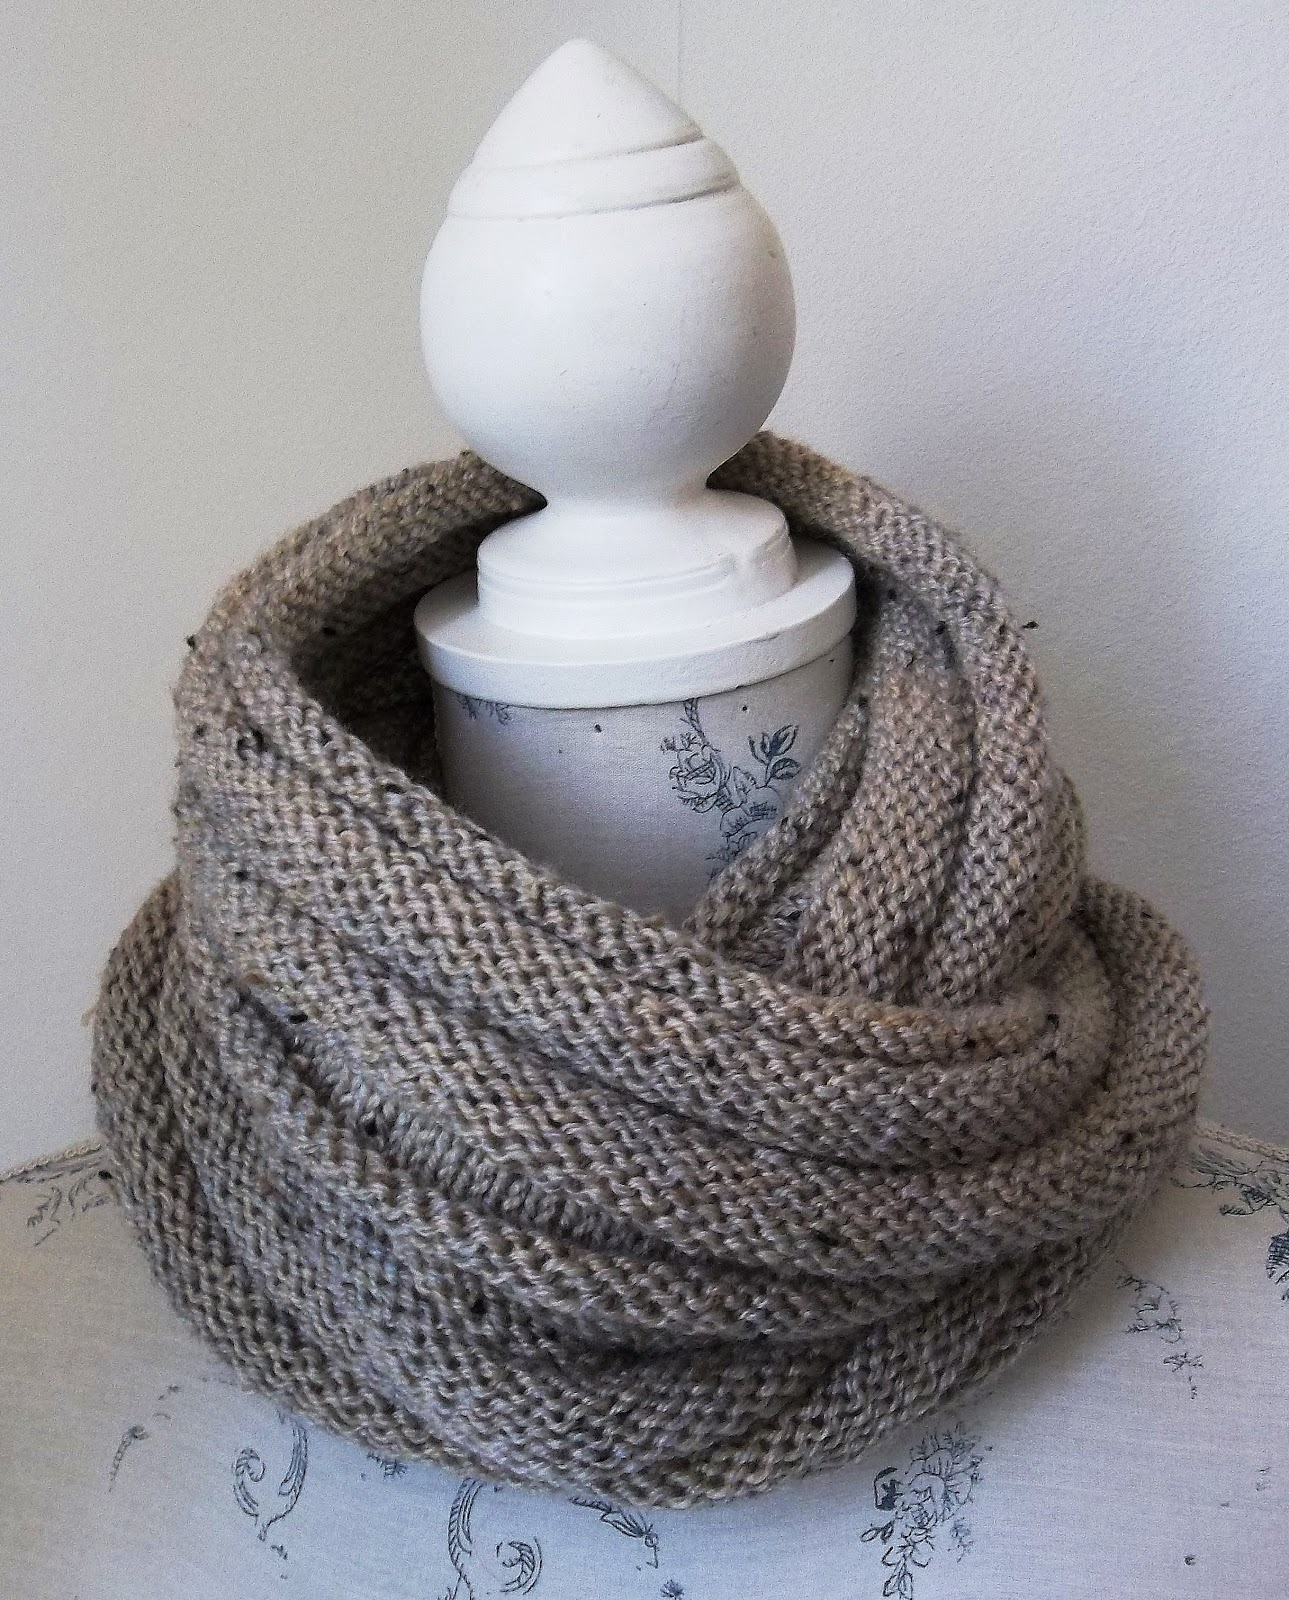 Simple Knitting Patterns Free : HAND KNITTING PATTERNS. ARAN. COWLS, HATS, SCARVES AND NECK WARMERS